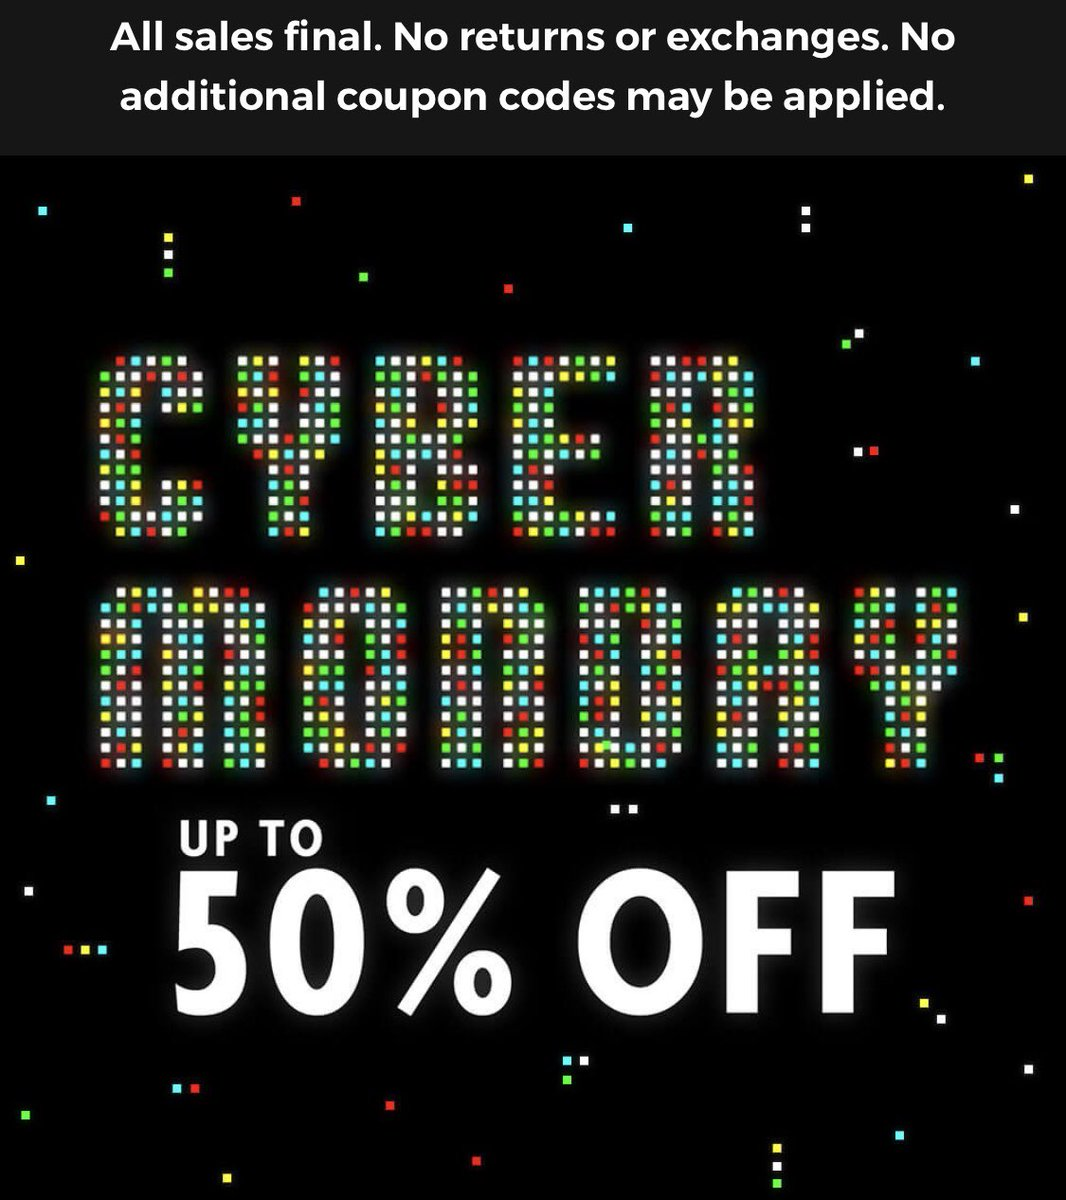 Missed out on Black Friday sales?Or maybe looking for some more awesome gear to the holidays?Then you don't want to miss the Cyber Monday sale going on right now @TRAVISMATHEW !Stop by travismathew.com for sweet deals on apparel for work and play!